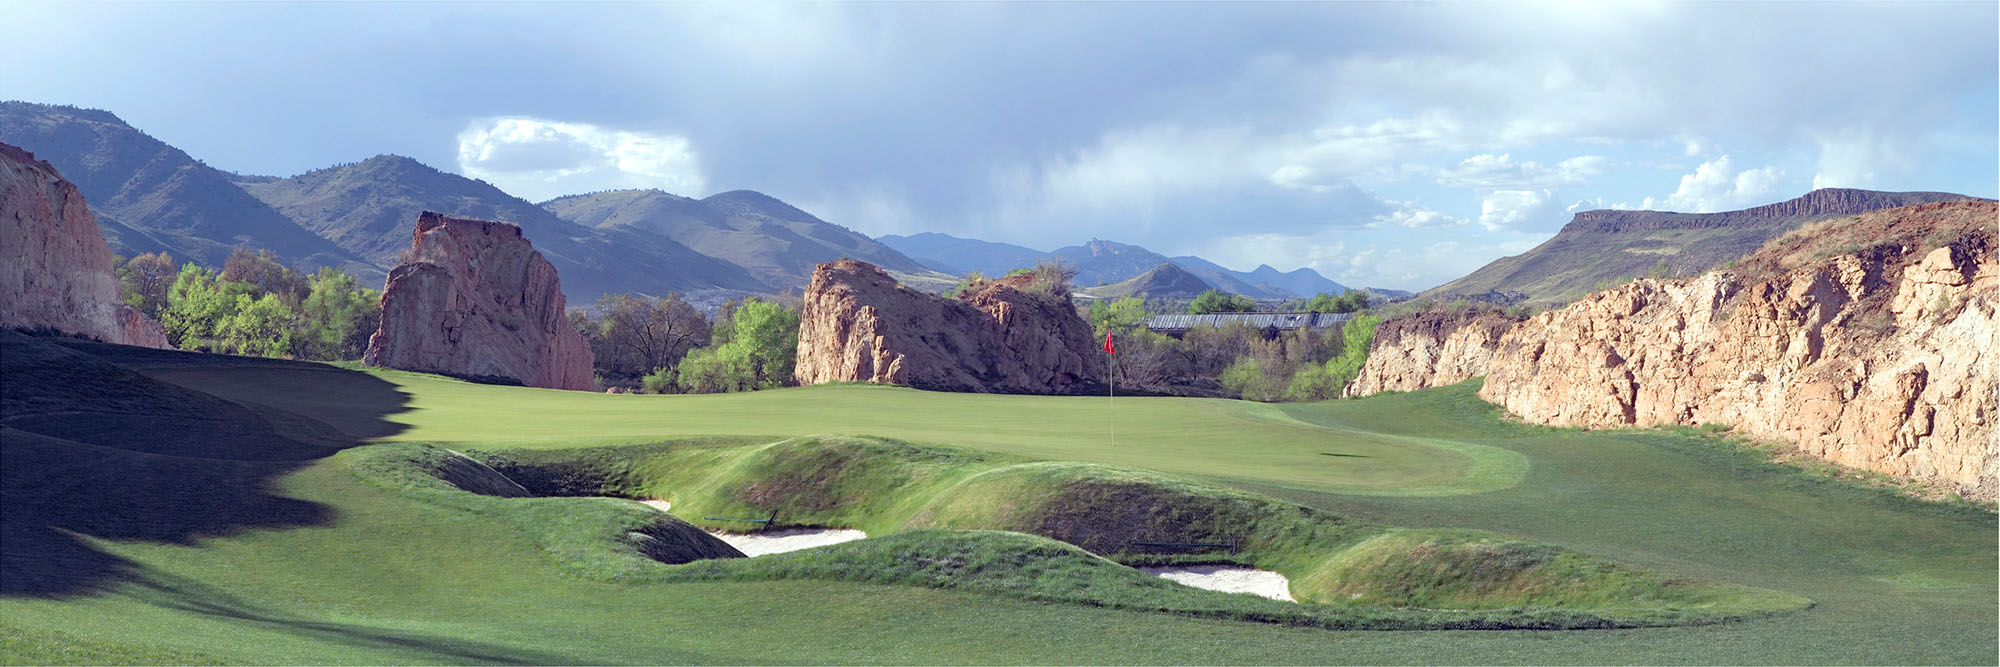 Golf Course Image - Fossil Trace No. 18